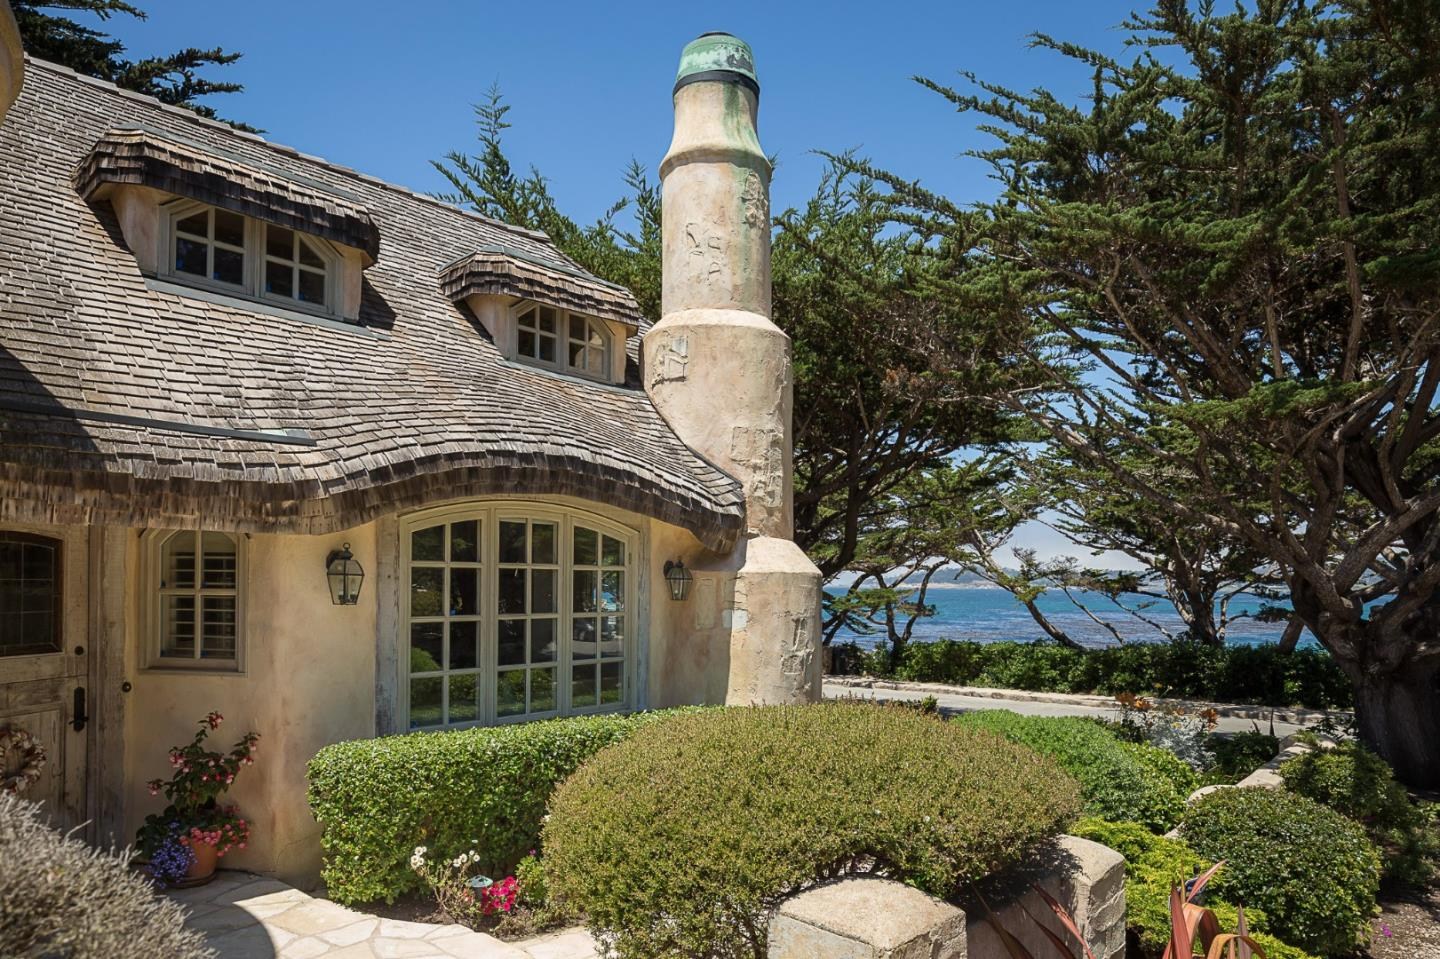 Fairytale storybook cottage in Carmel CA for sale